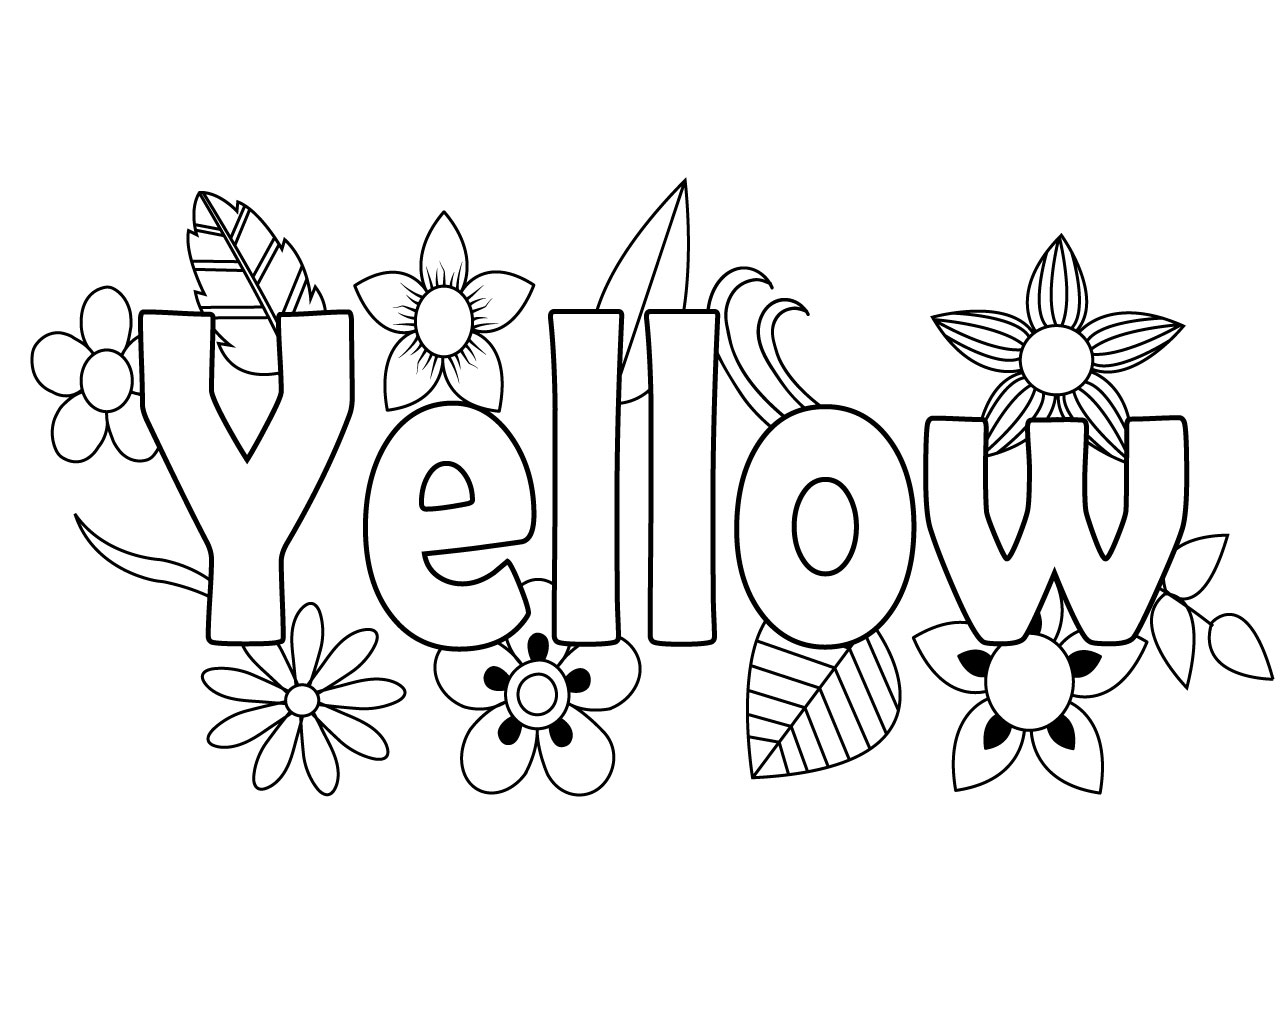 coloring pages yellow yellow song coloring pages for kids preschool colors yellow pages coloring